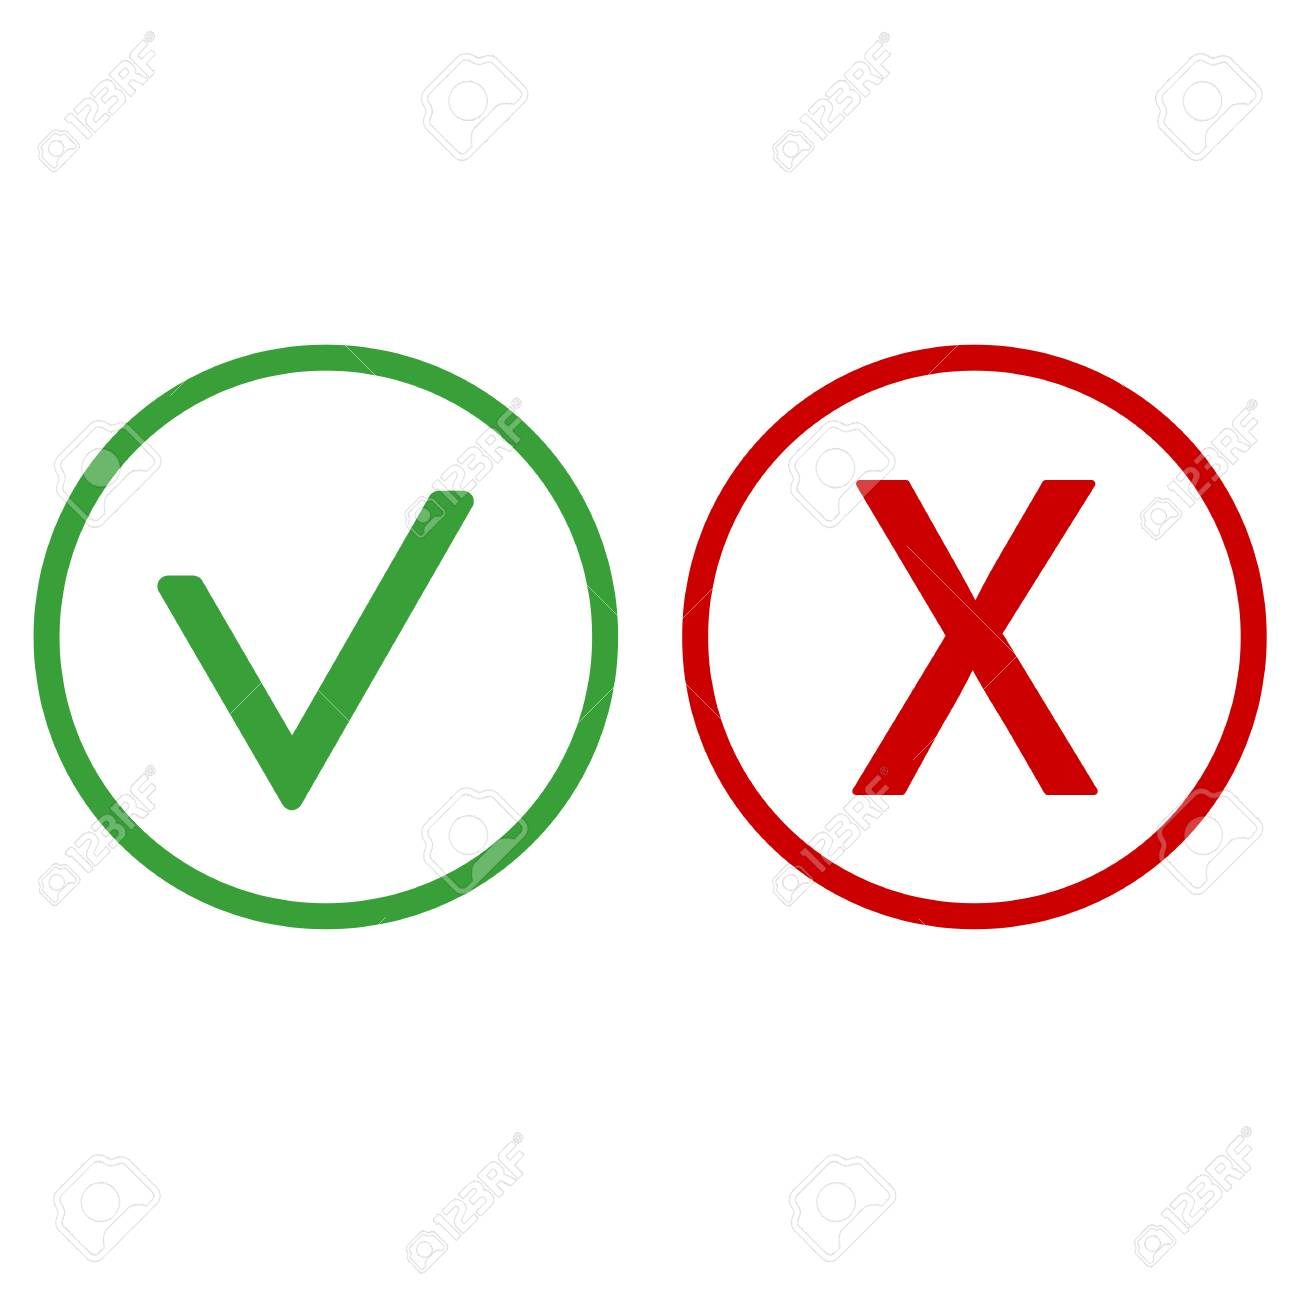 checkmark and x or confirm and deny icon for apps and websites